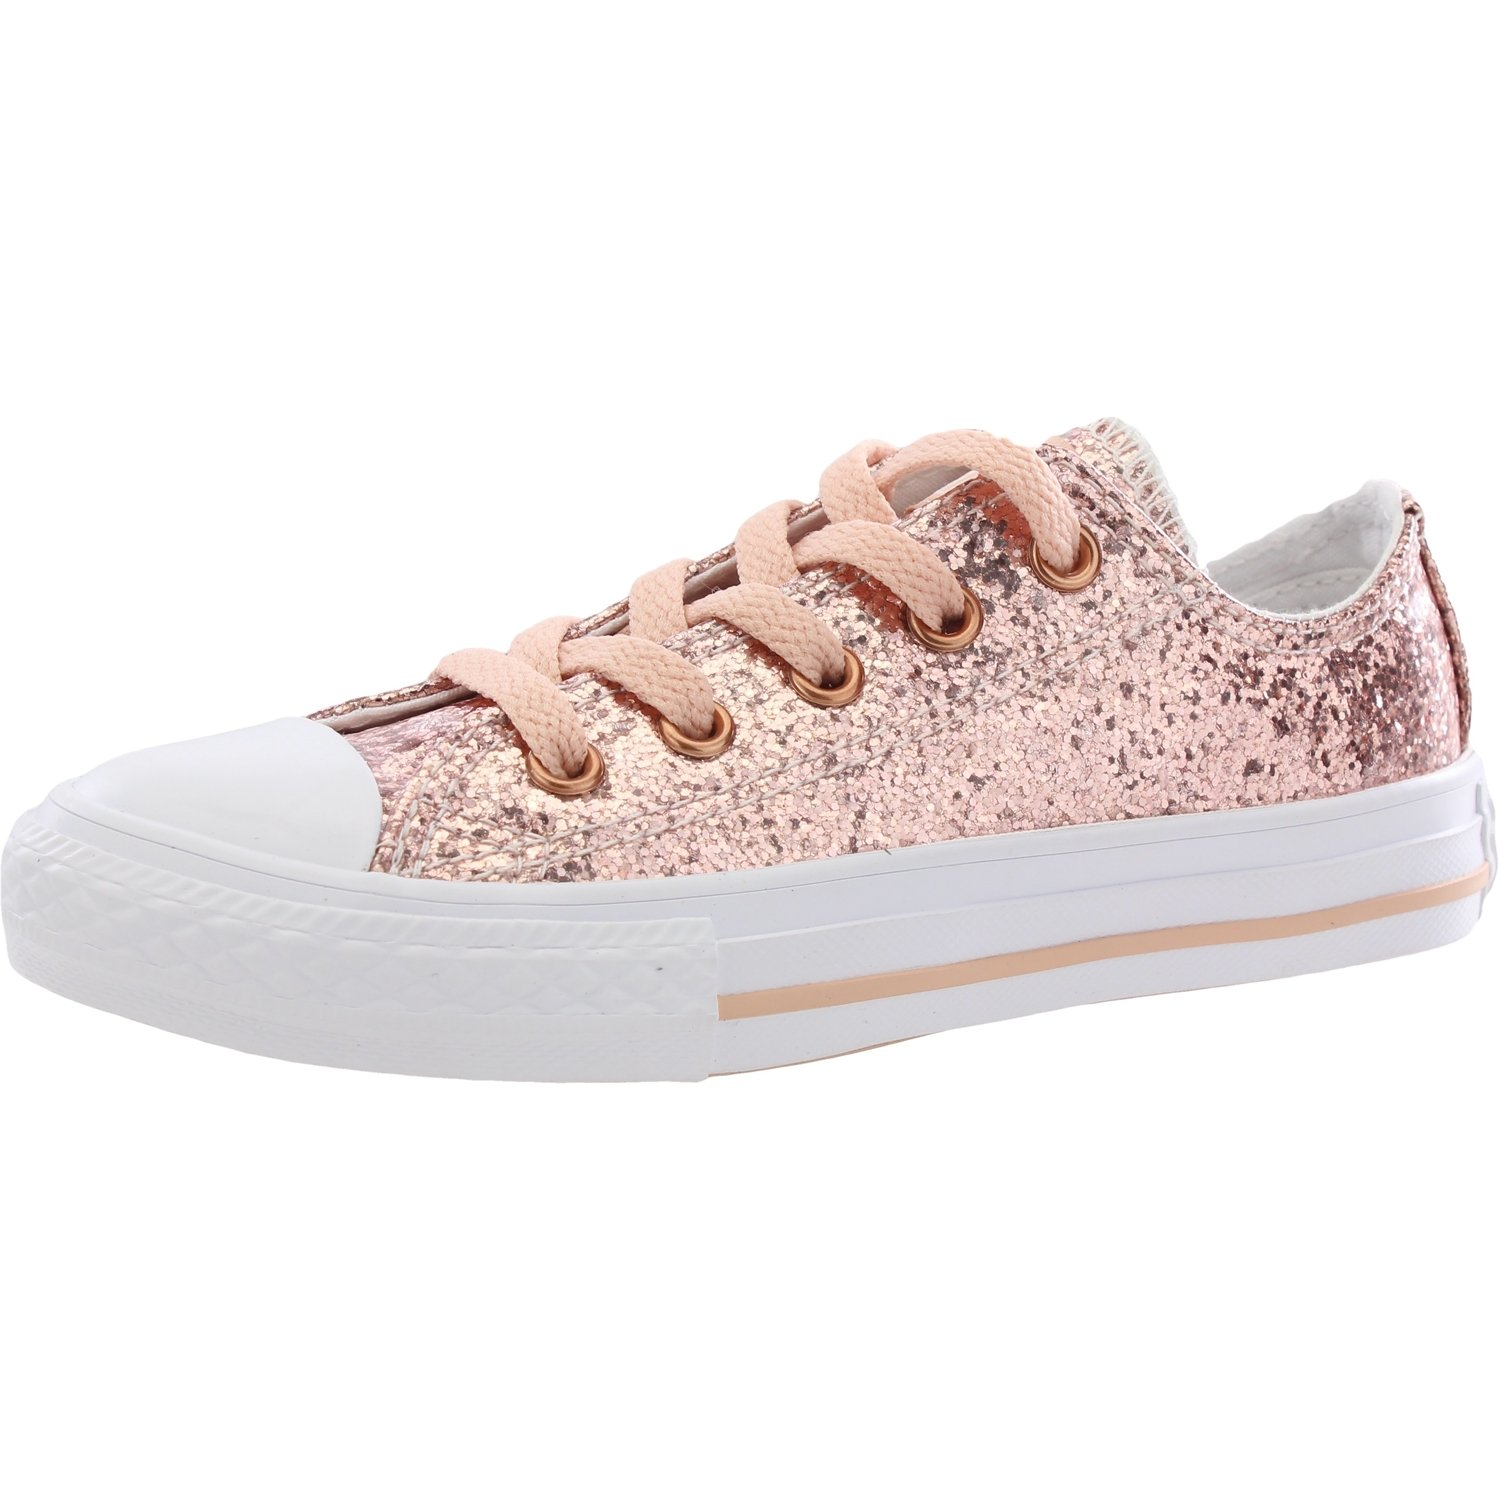 7140d65f4a7b Galleon - Converse Chuck Taylor All Star Sparkle Ox Junior Trainer Dusk Pink  - US 6